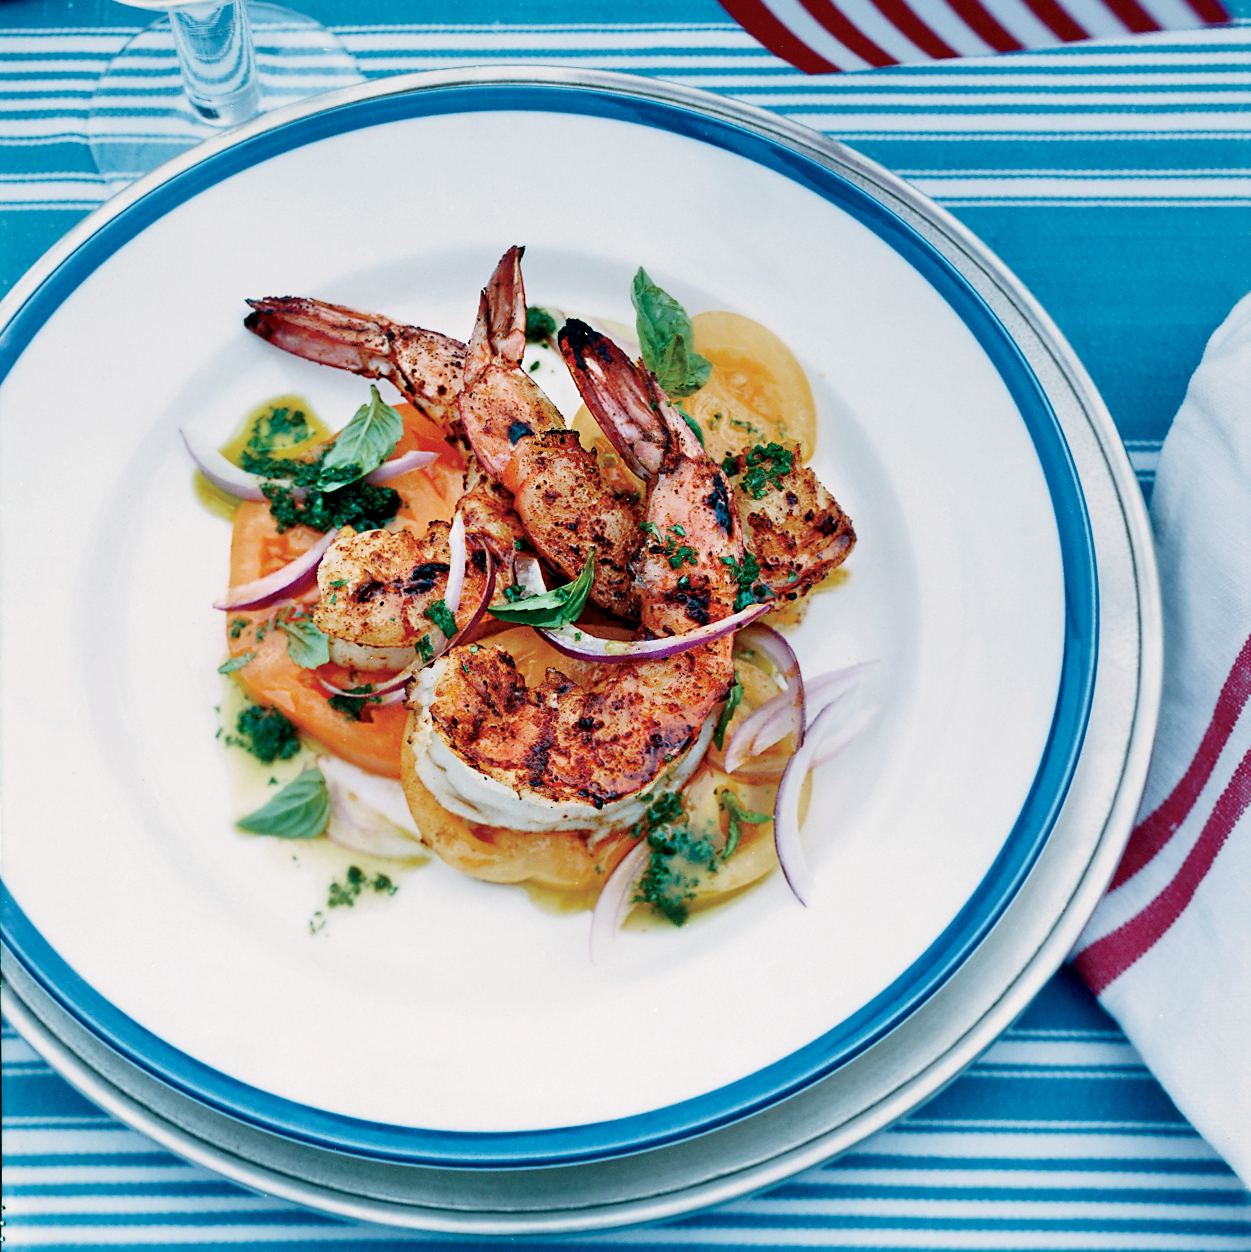 Barbecued Spiced Shrimp With Tomato Salad Recipe Bobby Flay Food